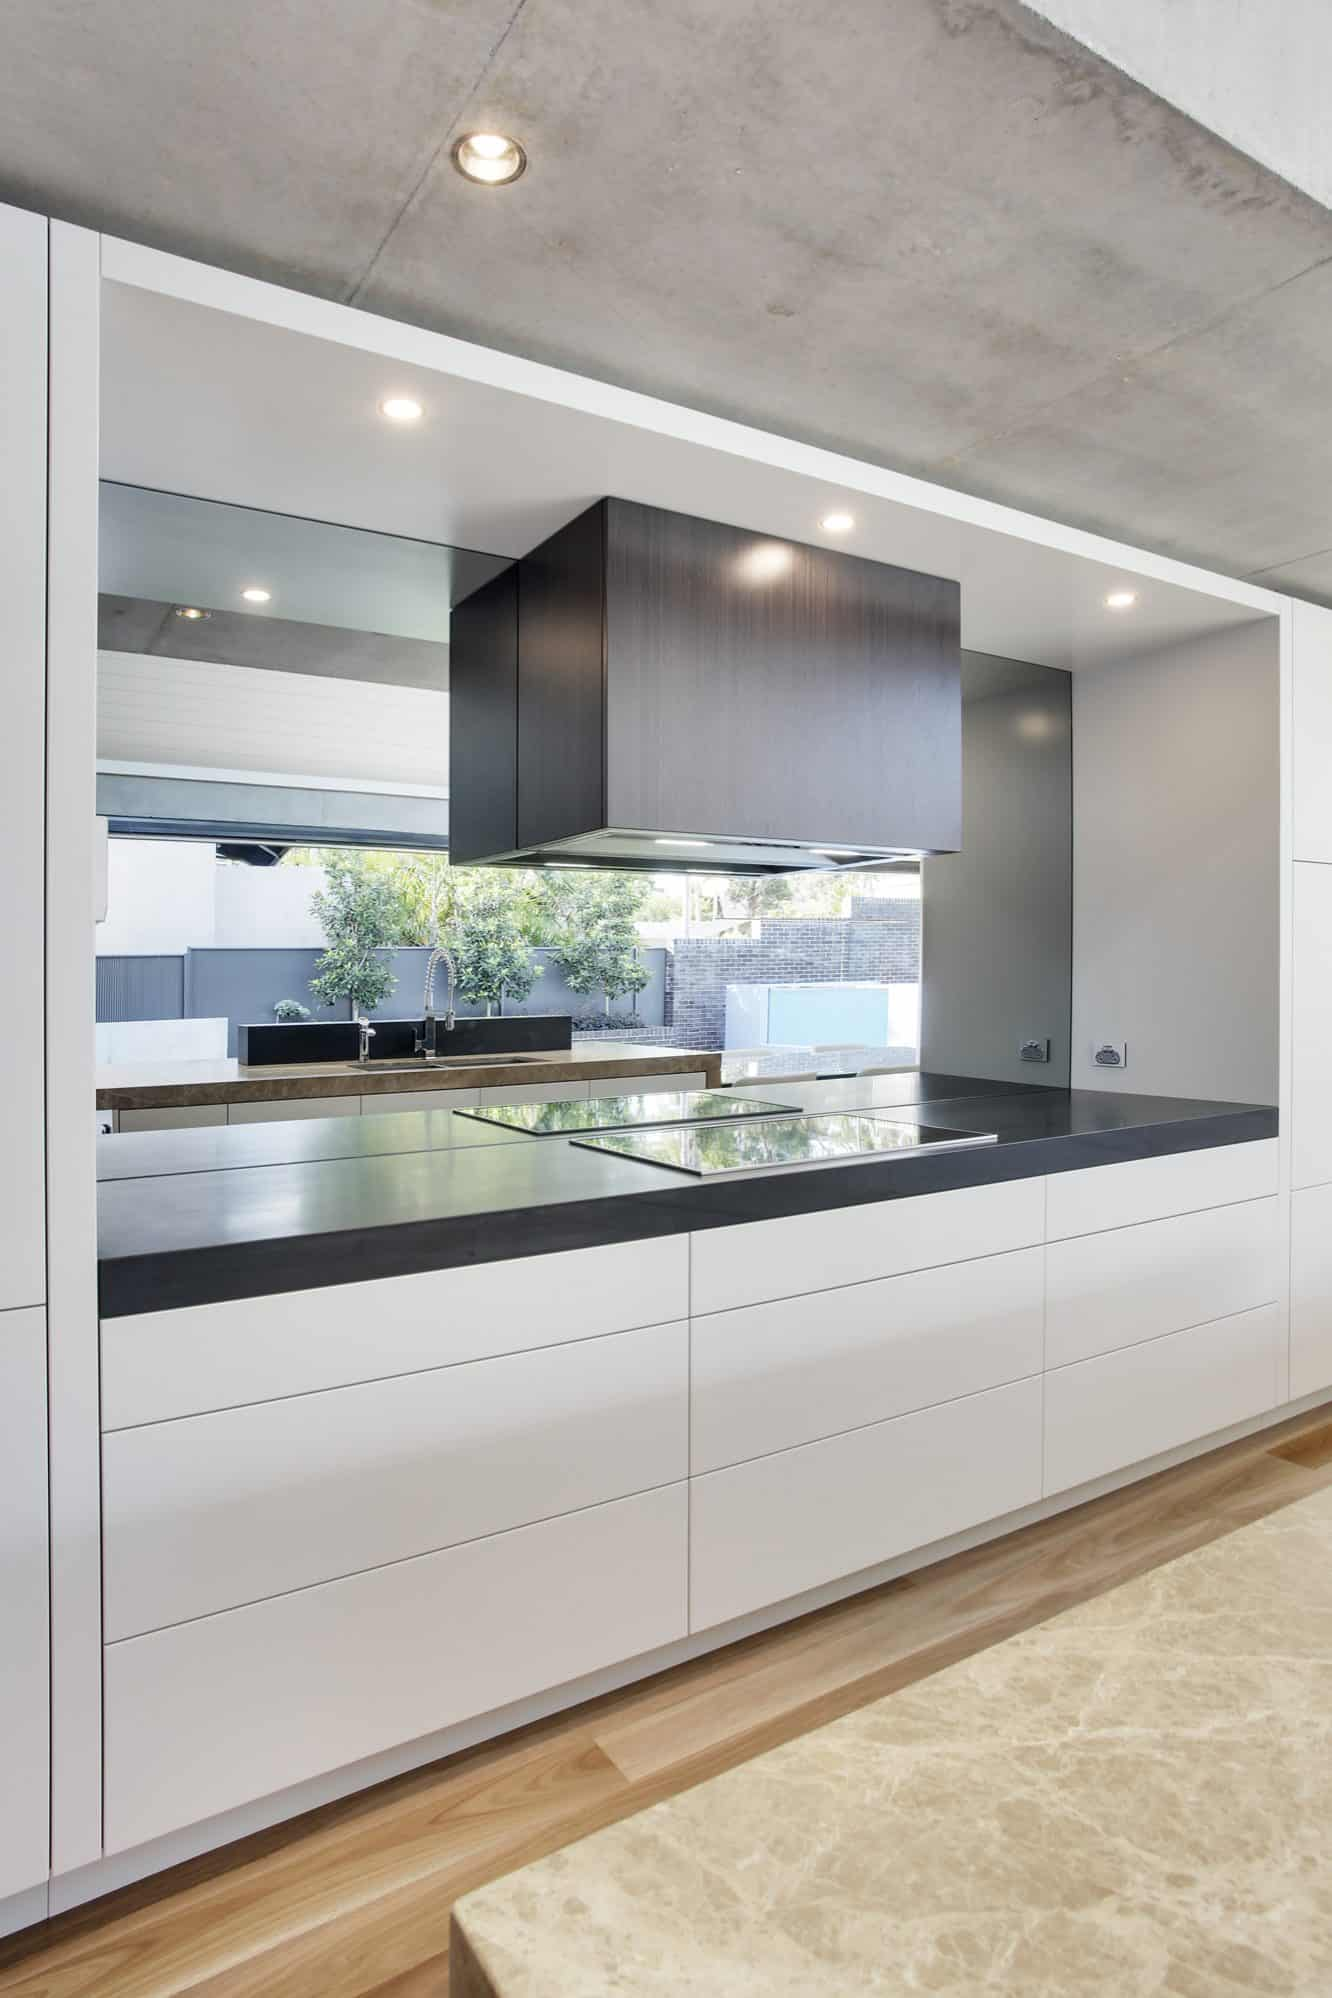 Cooking zone with box rangehood and mirror splashback